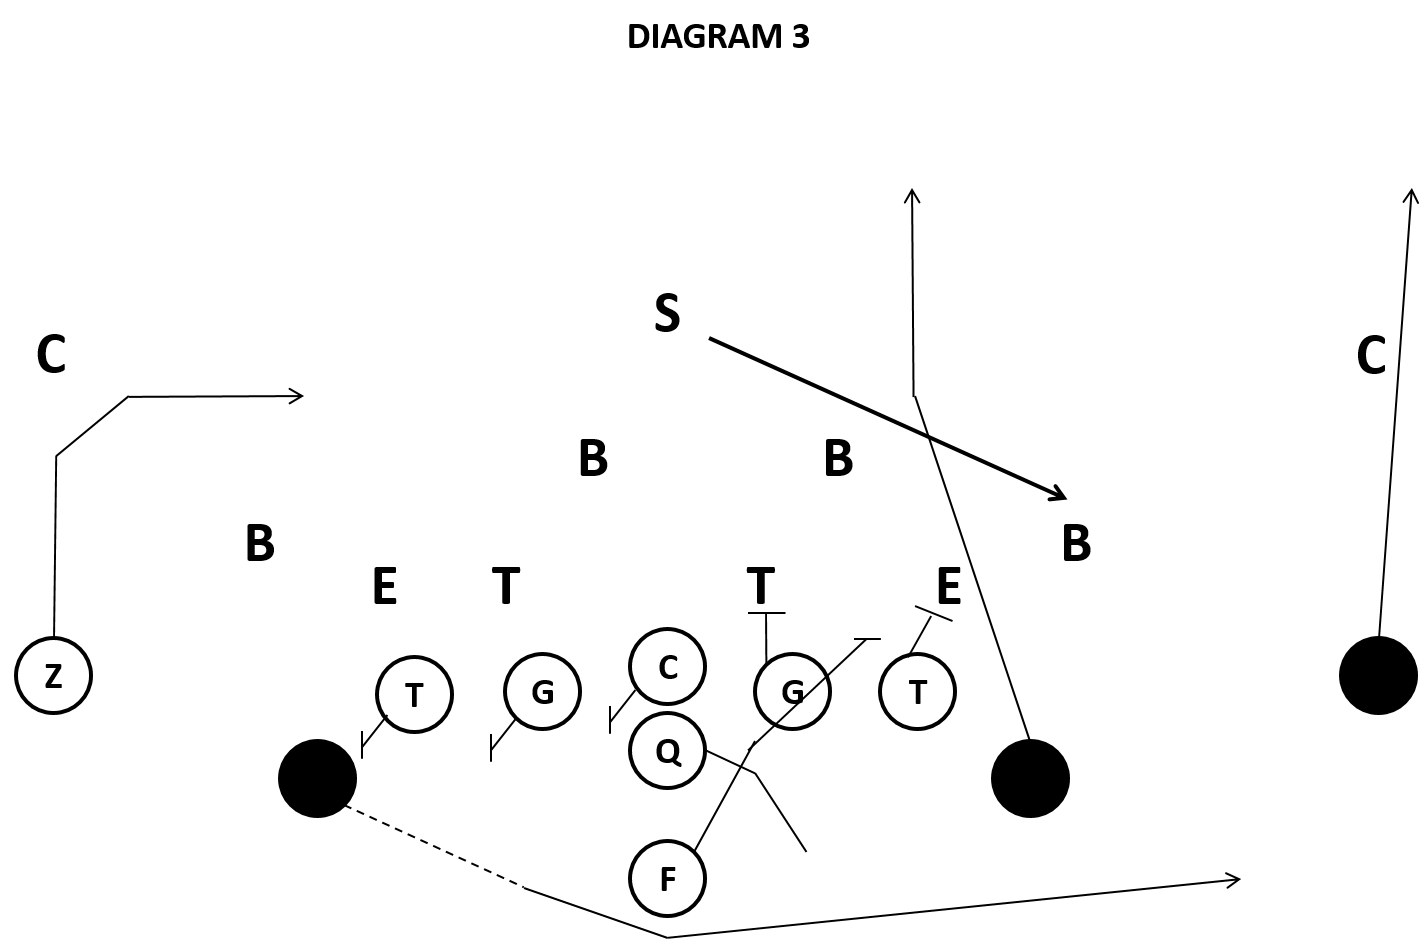 Download Free 5 3 Defense Playbook Software